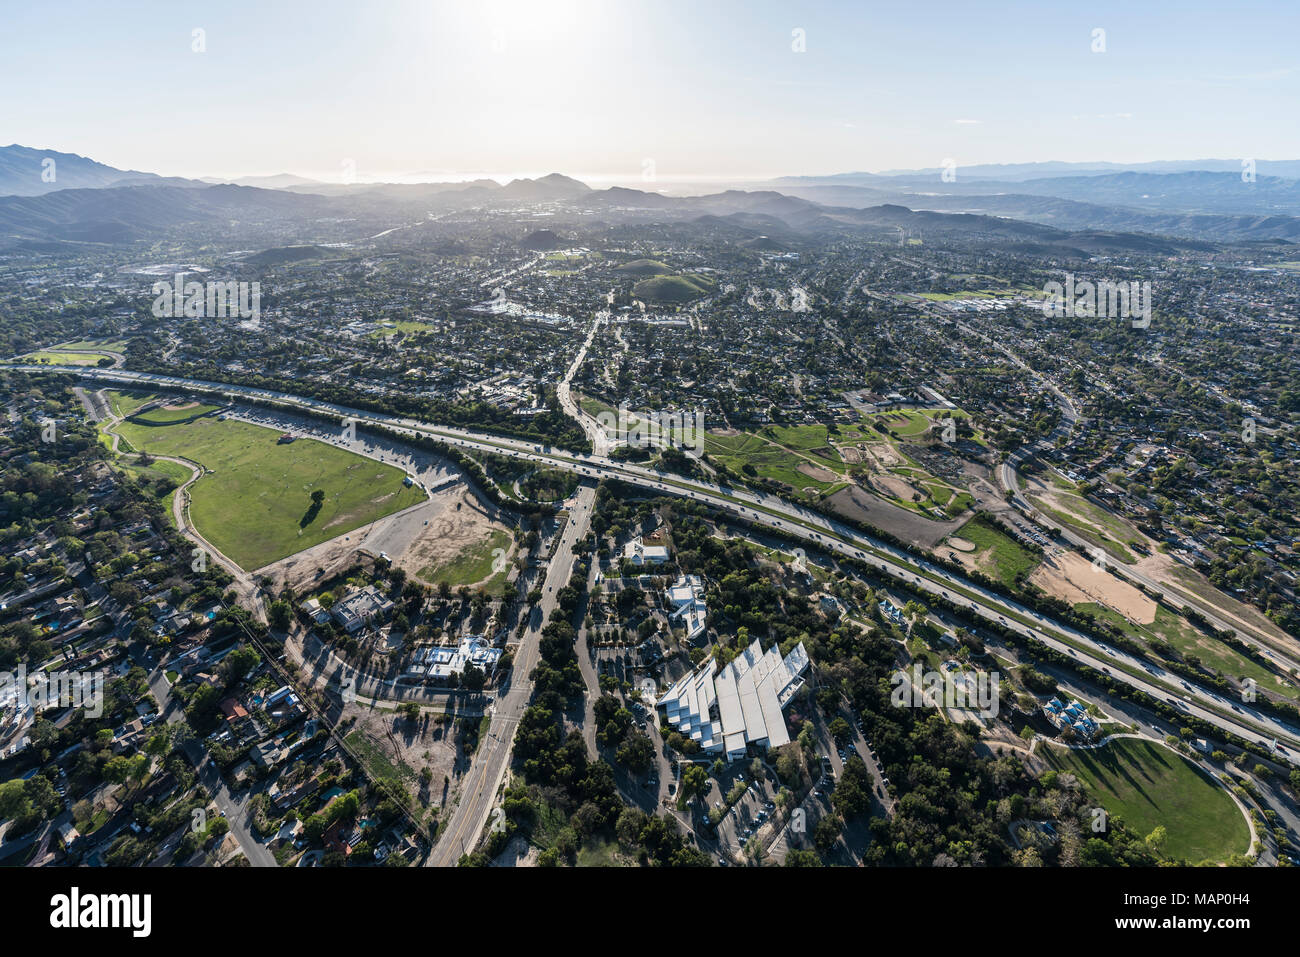 Aerial view of route 23 freeway at Janss Road in suburban Thousand Oaks near Los Angeles, California. - Stock Image